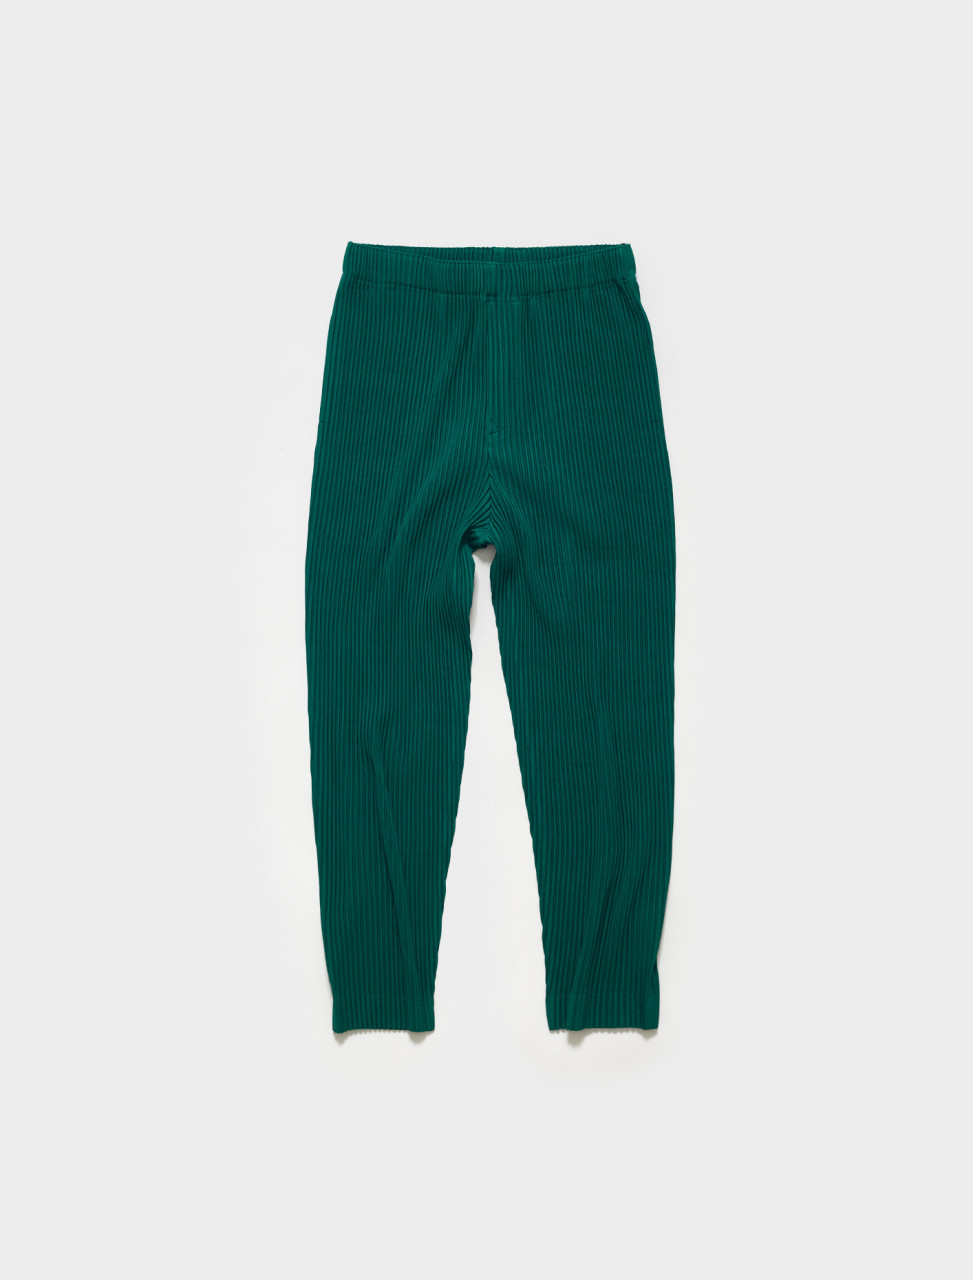 HP16JF128-63 HOMME PLISSE ISSEY MIYAKE Pleated Trousers in Viridian Green